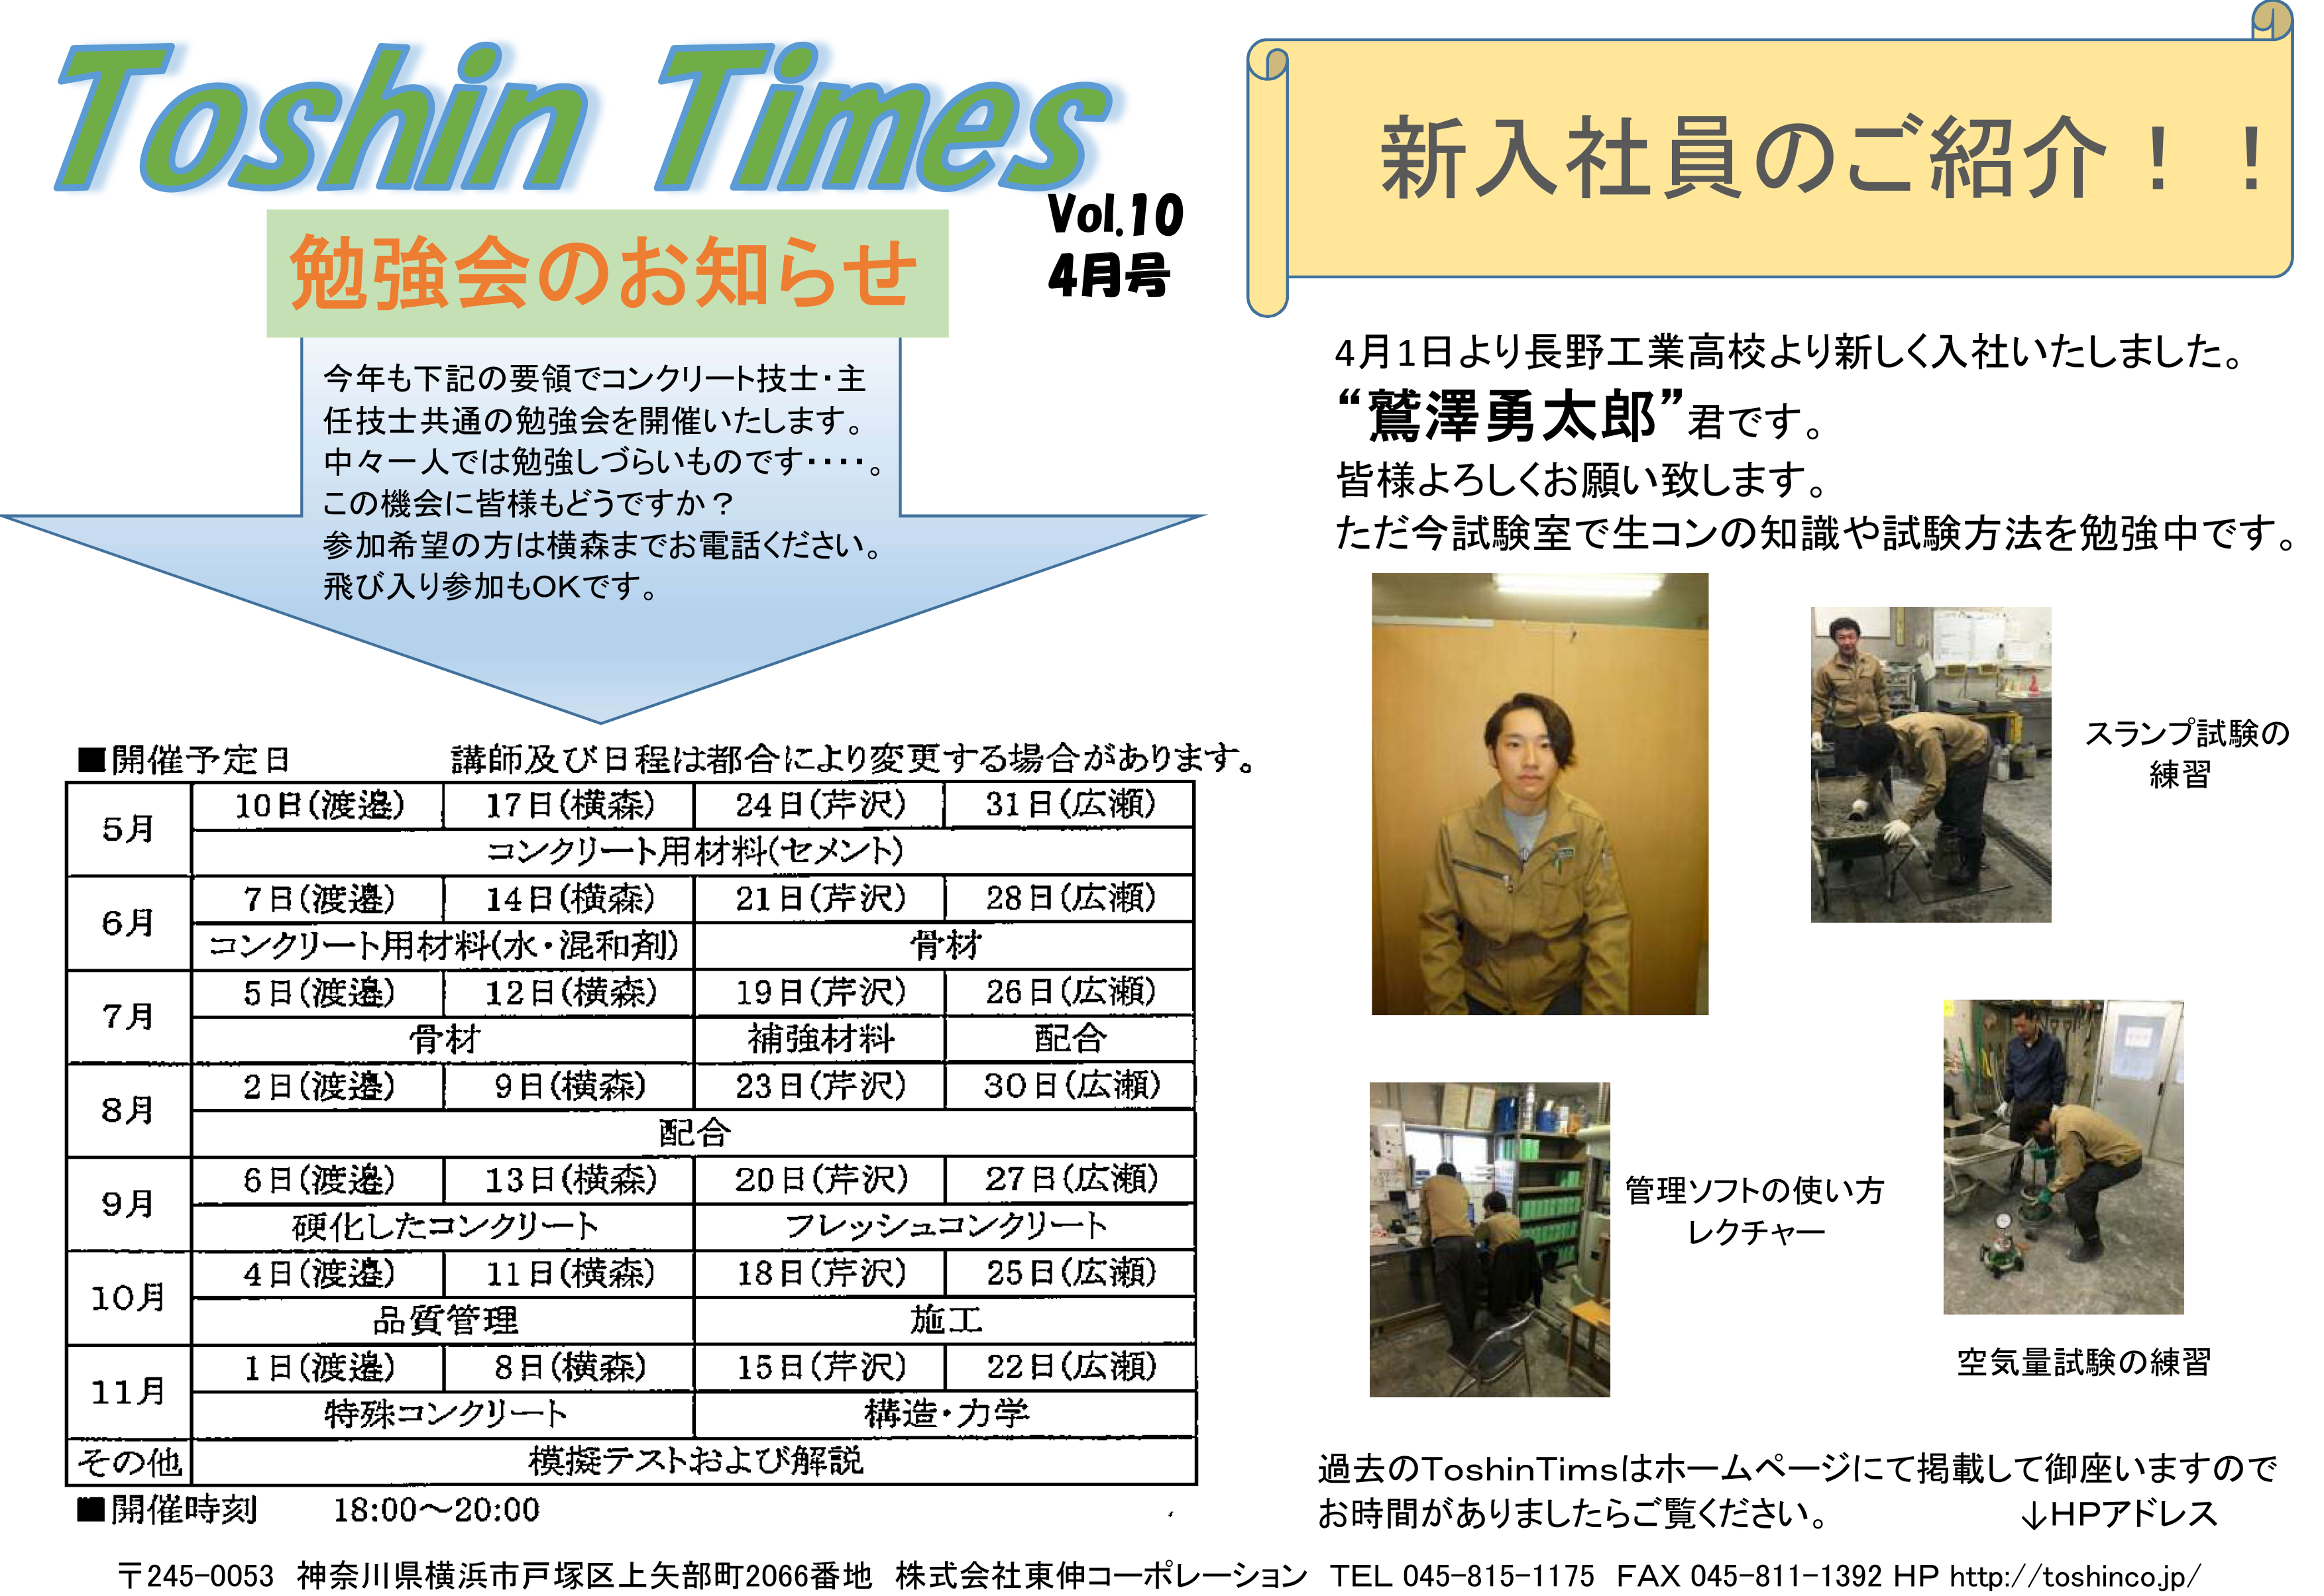 ToshinTimes vol.10